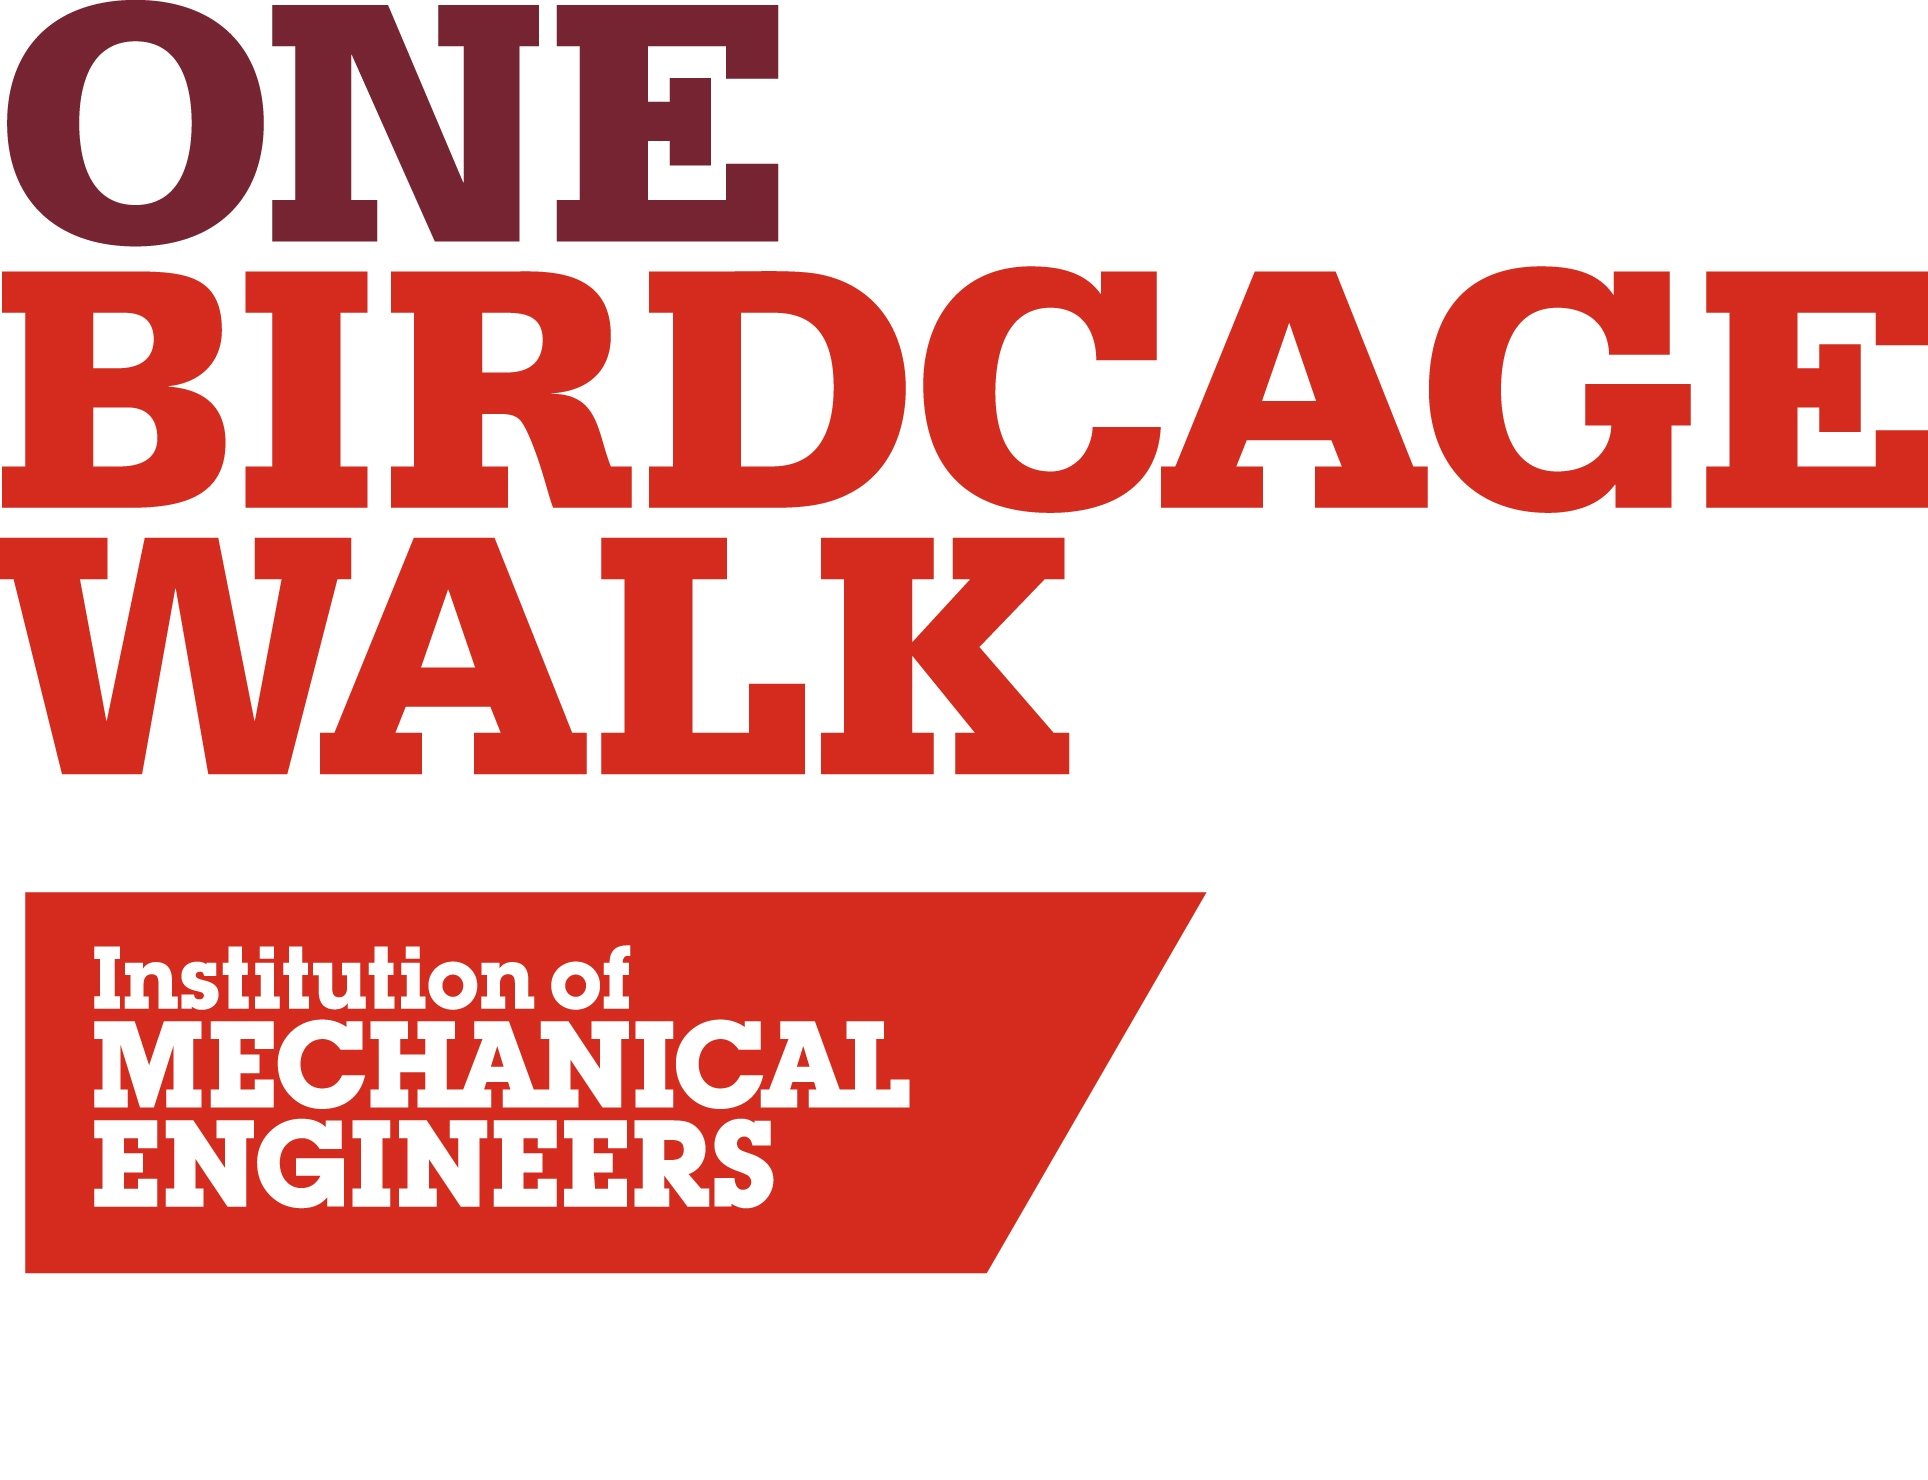 One birdcage walk